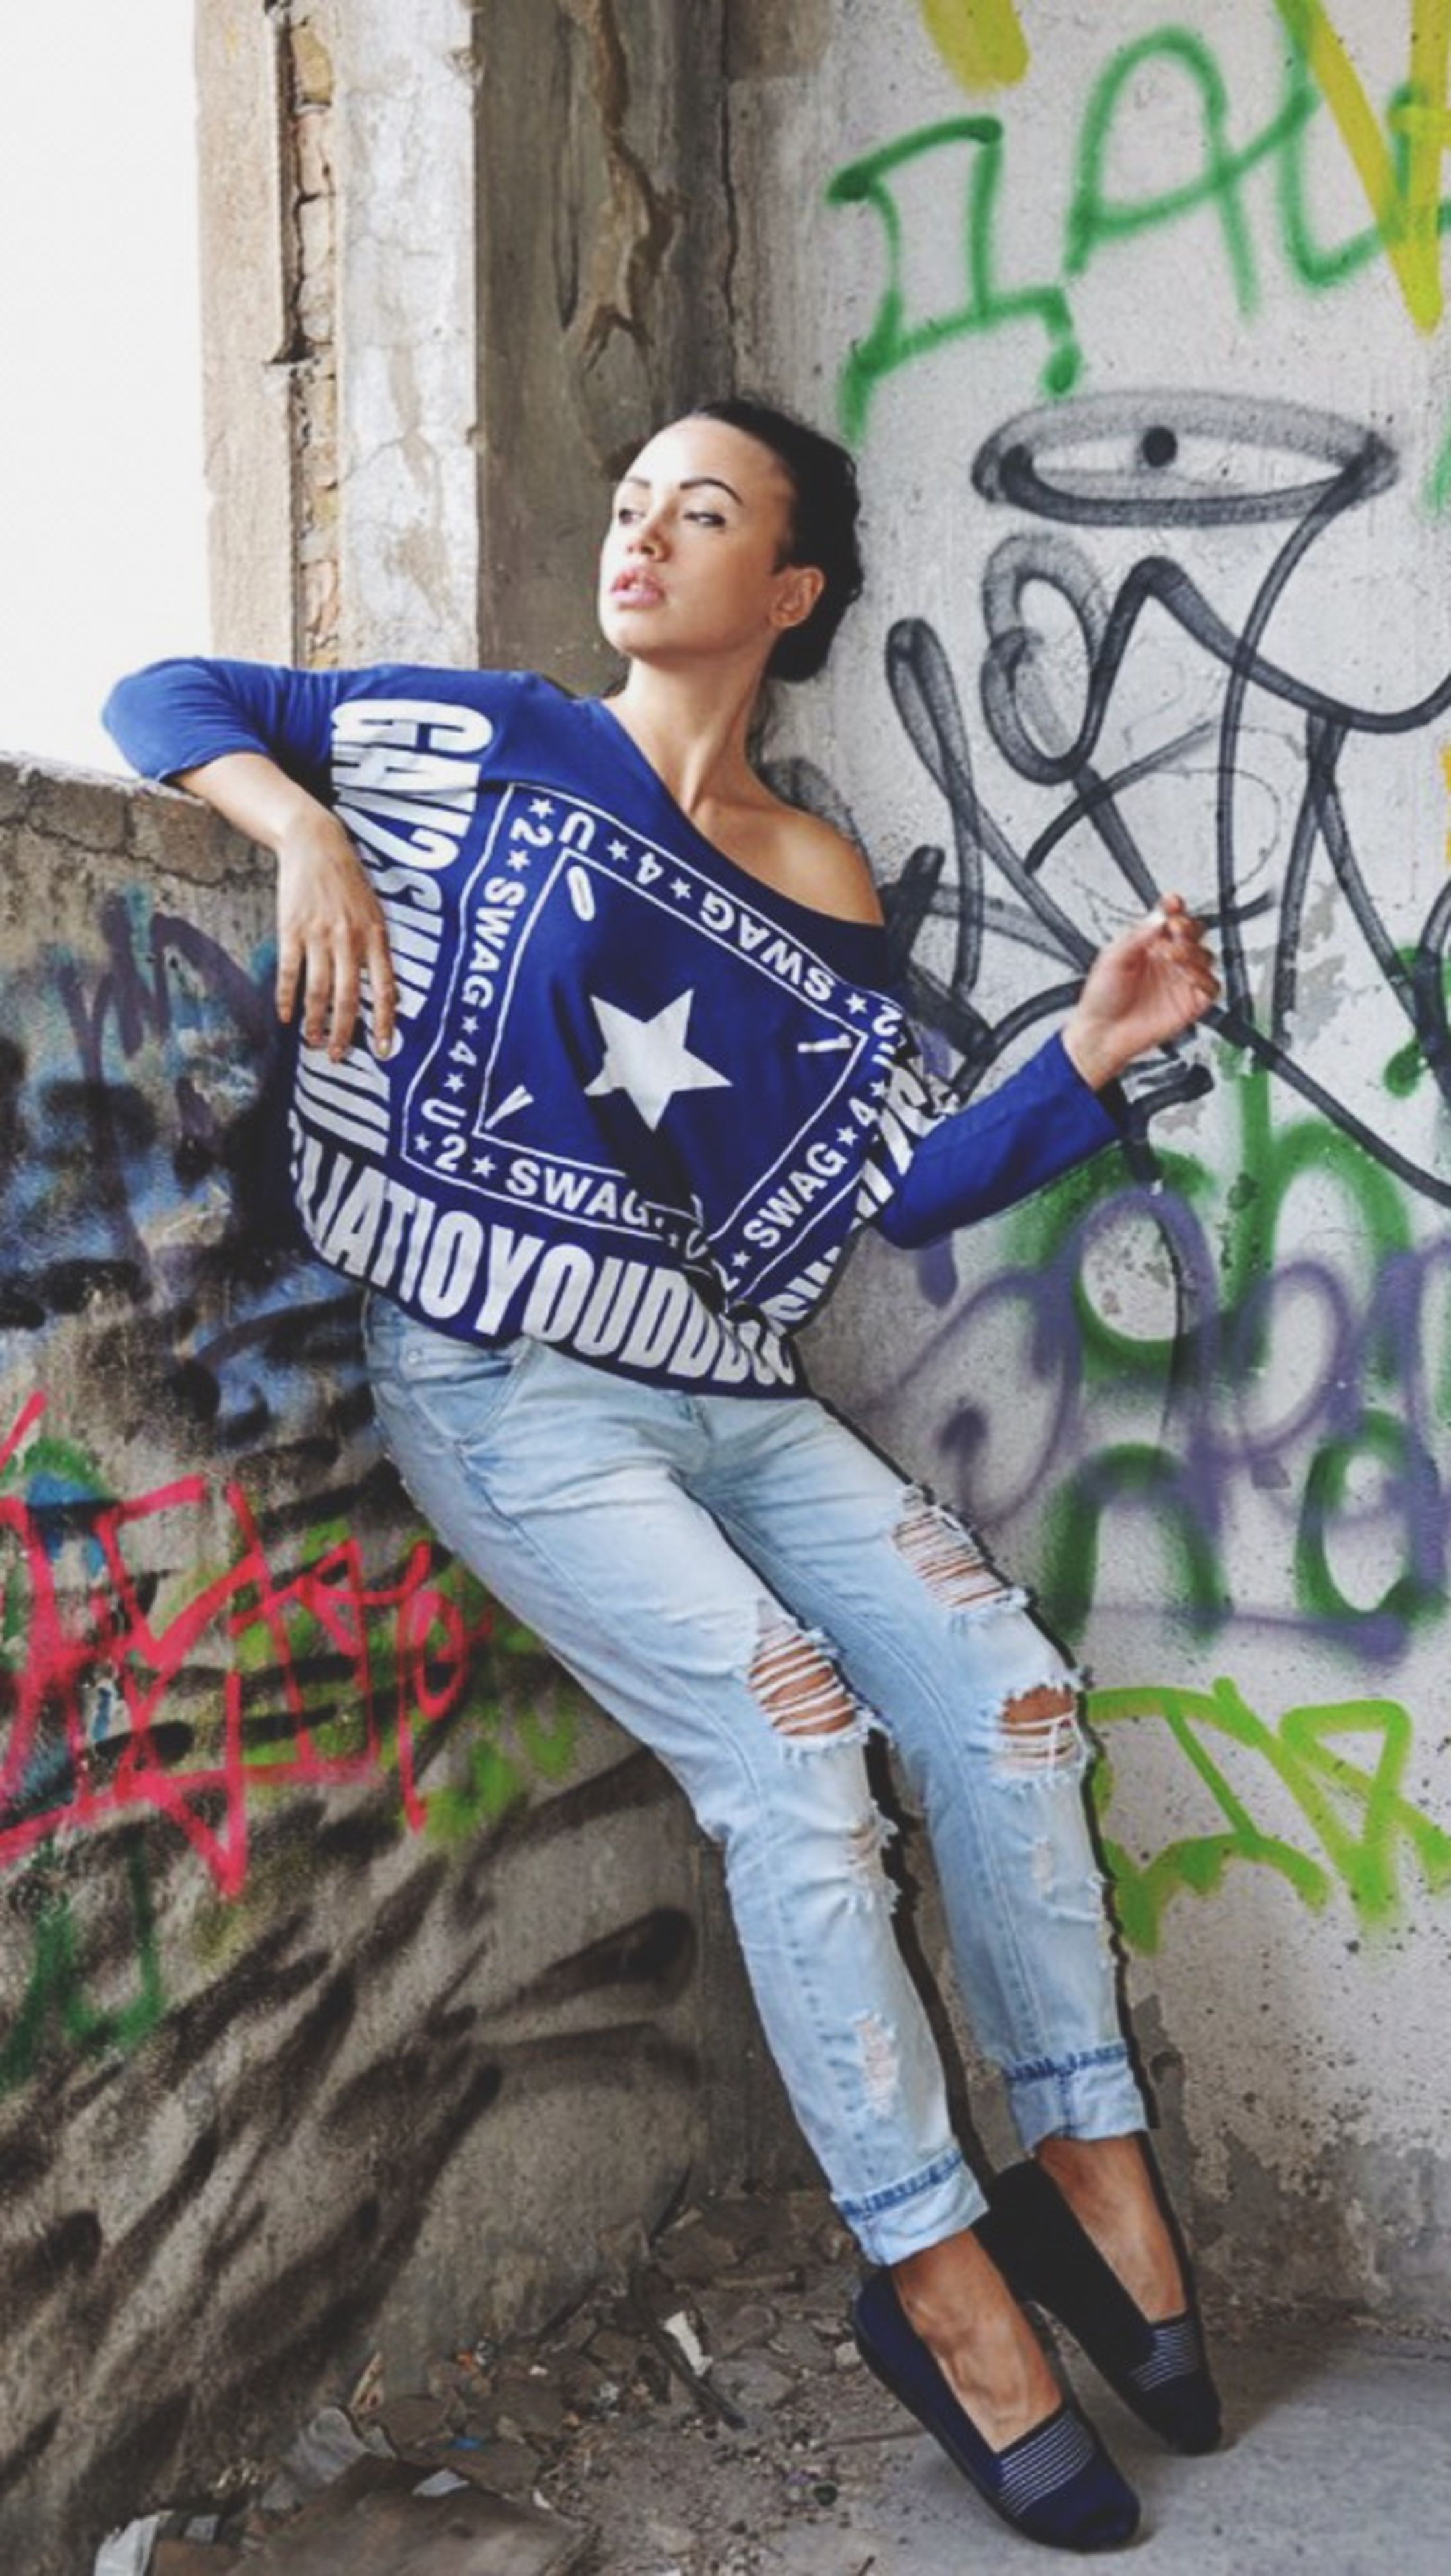 casual clothing, young adult, lifestyles, front view, person, leisure activity, looking at camera, full length, standing, portrait, wall - building feature, young women, built structure, smiling, graffiti, fashion, three quarter length, outdoors